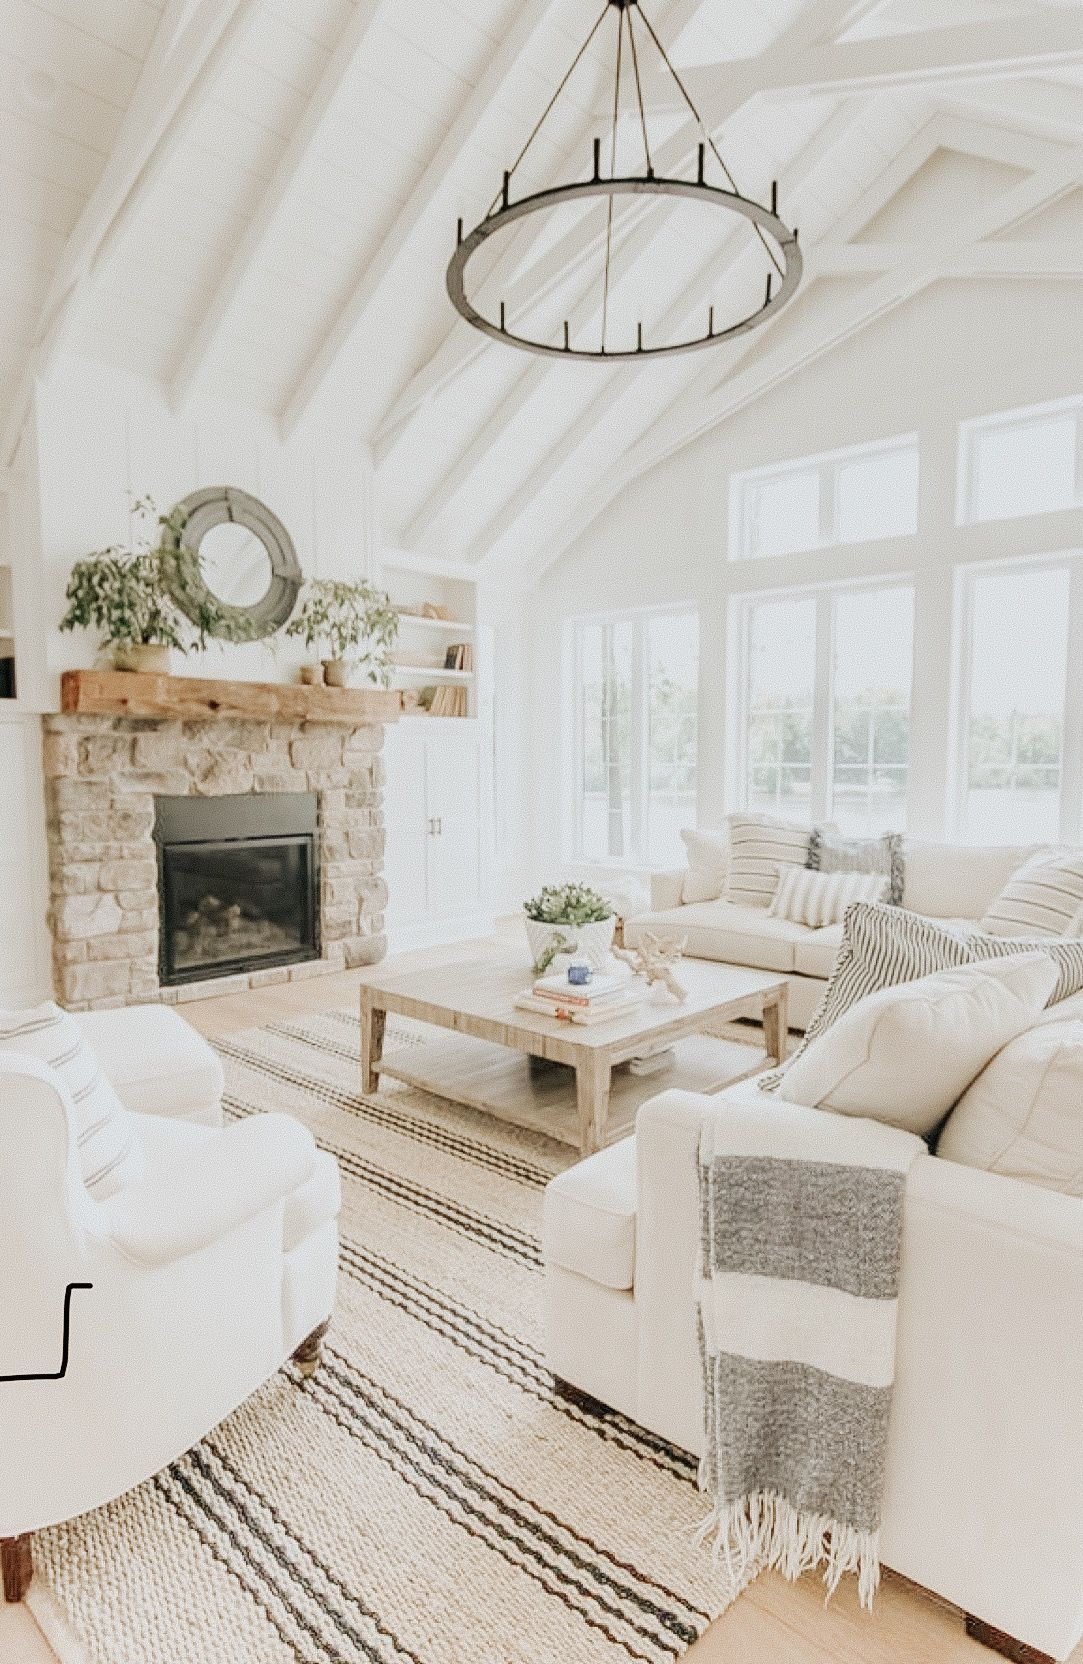 Modern Farmhouse Living Room - White Painted Beams - Home Decor - Interior Design - White couches l